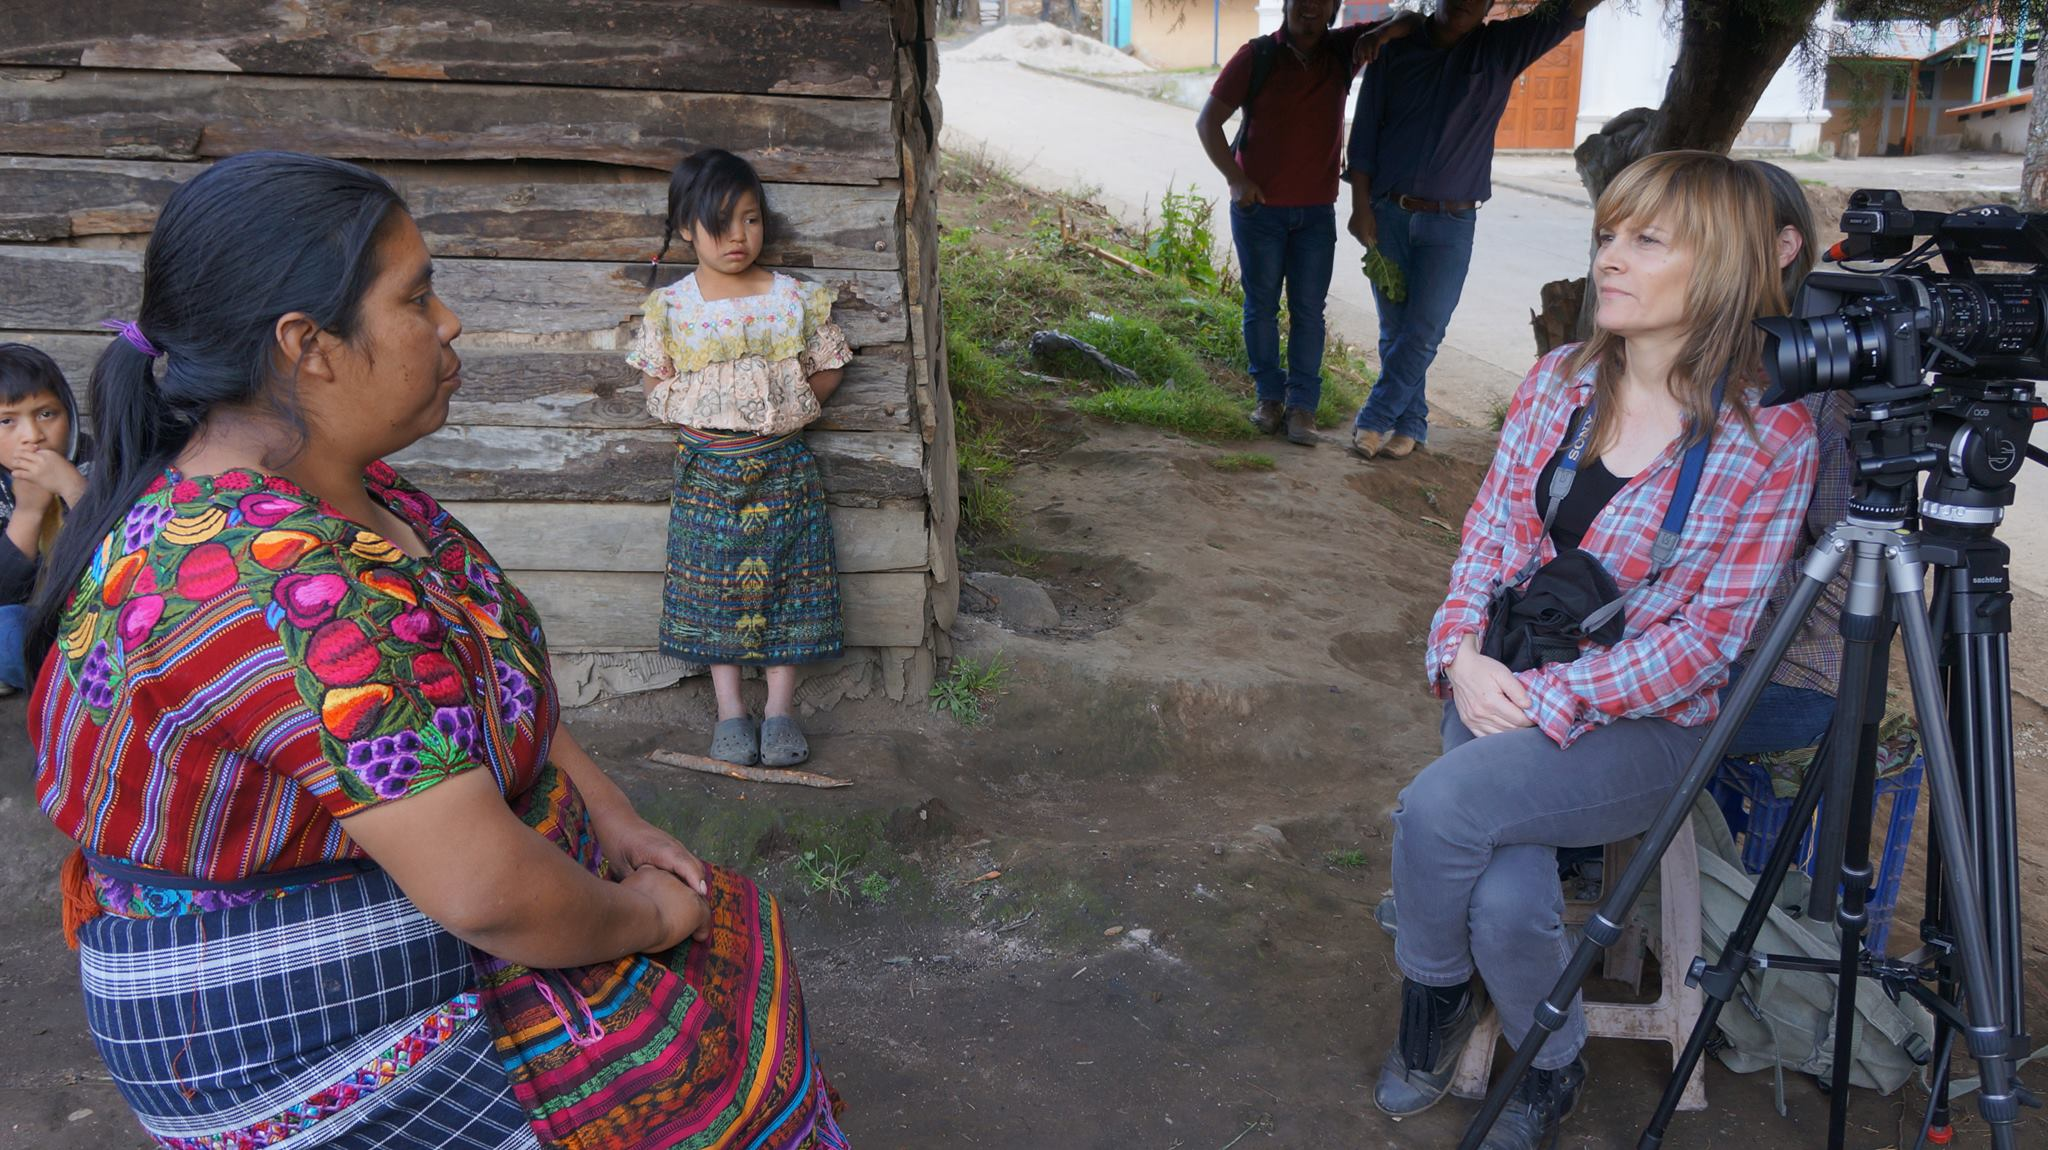 Jody Santos interviewing an indigenous woman in Guatemala as the woman's daughter looks on